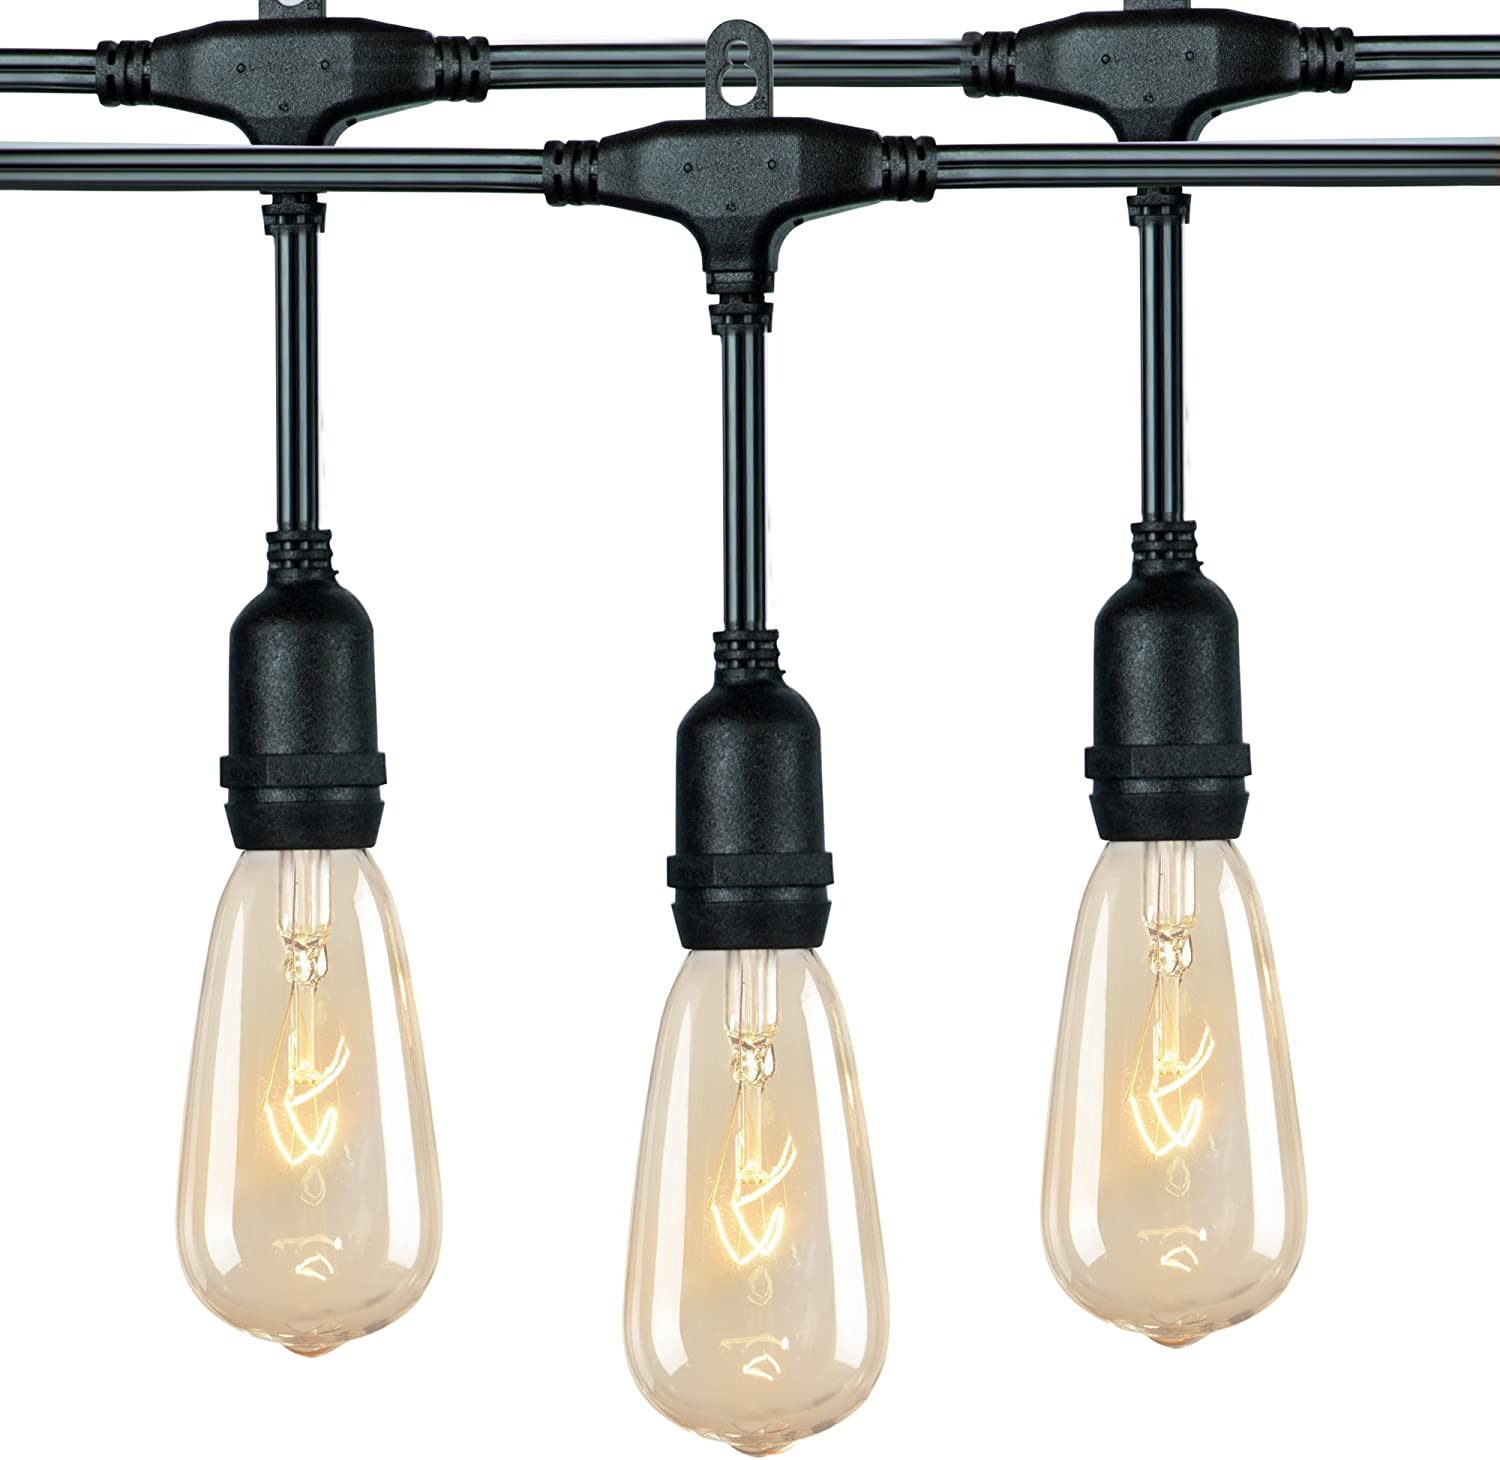 36 Ft. Outdoor Patio String Lights with 24 E17 Hanging Sockets & 7 Watt ST40 Clear Bulbs, Weatherproof Vintage Edison Light for Garden Porches Bistro Backyard Market Cafe Wedding Party Decor, Black